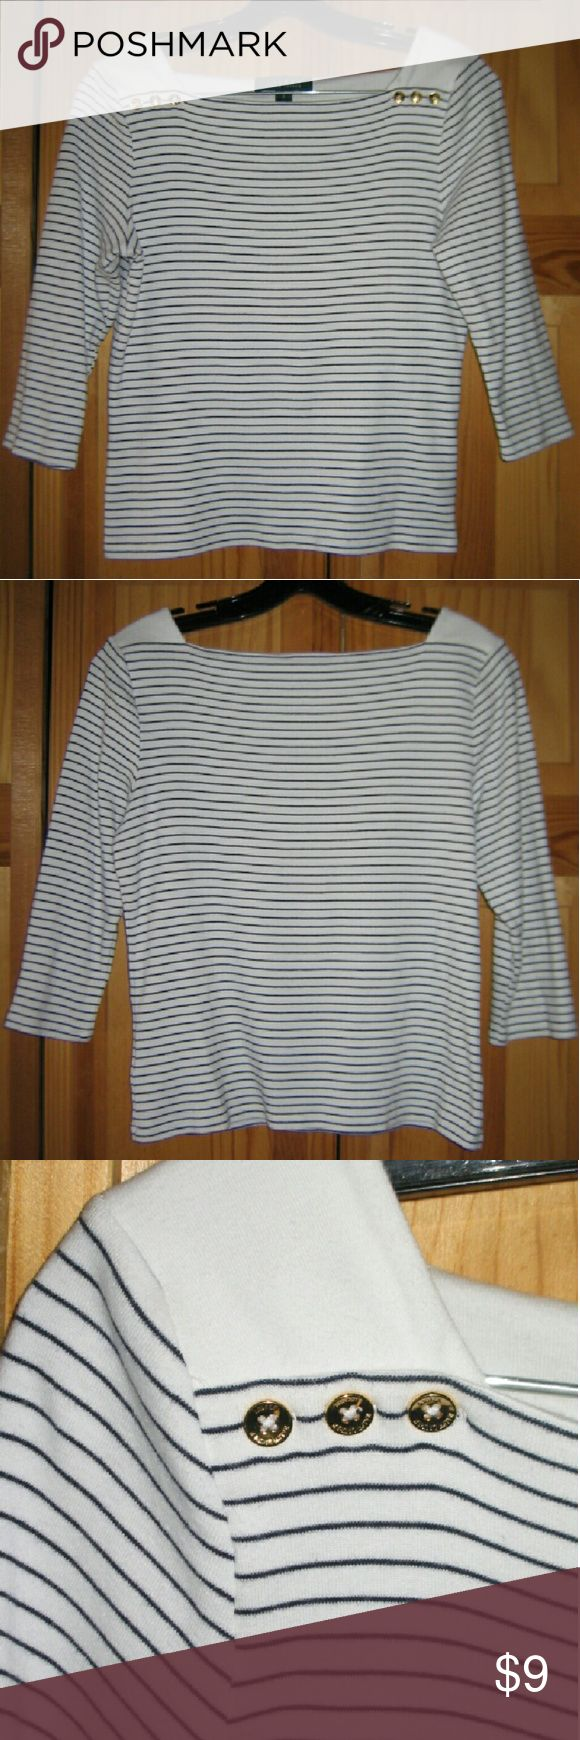 Ralph Lauren Striped Top This top is preloved but still in very good condition. It is from the LAUREN Ralph Lauren line. It is a 3/4 sleeve white with thin black stripes and features gold tone buttons near the front shoulders. It does have that nautical look to it. Made of 100% cotton. Tag size is Small. Ralph Lauren Tops